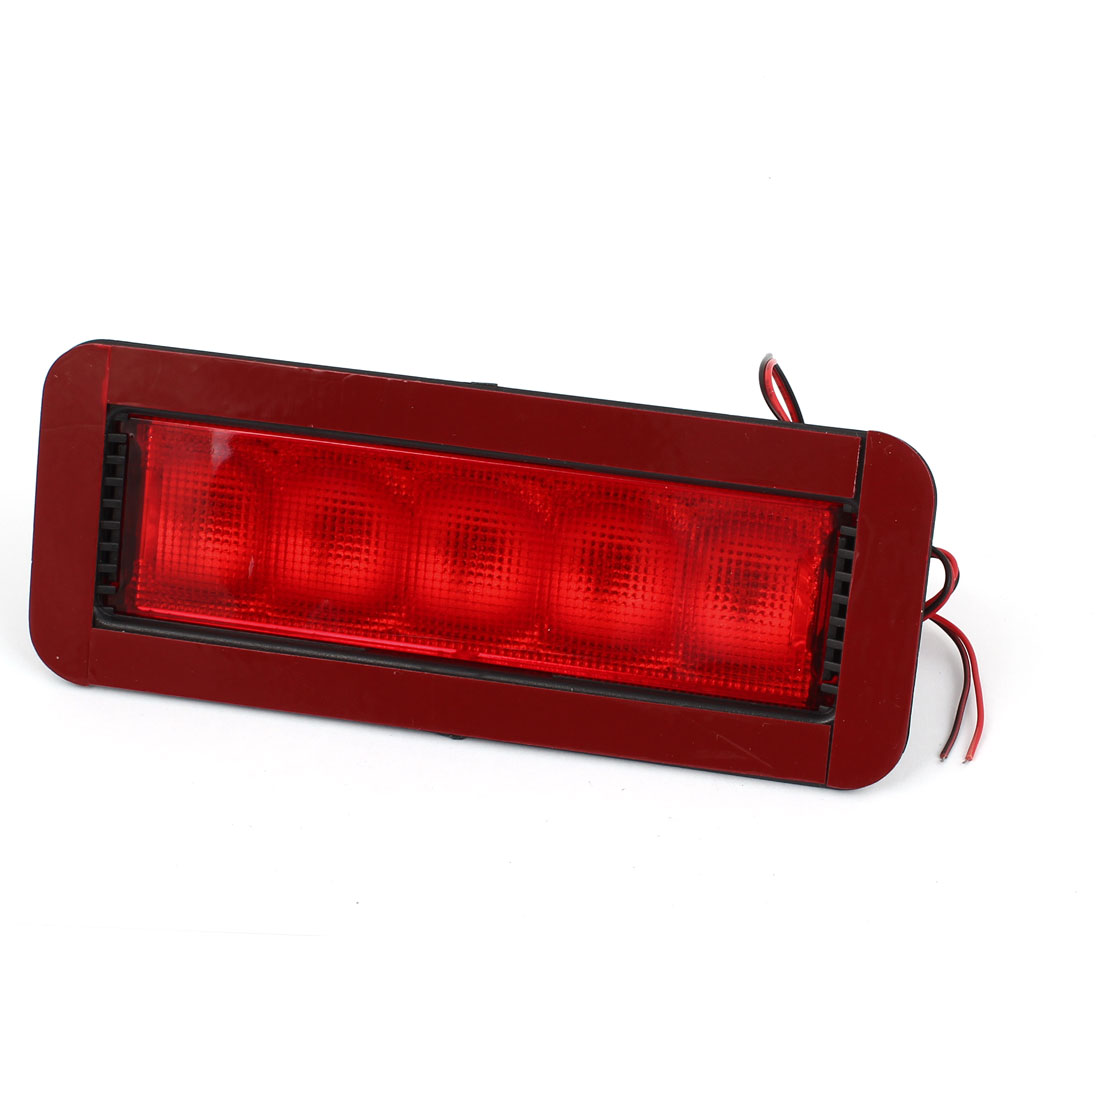 Auto Car Black Plastic Casing 5 LED Rear Brake Light Reversing Lamp DC 12V